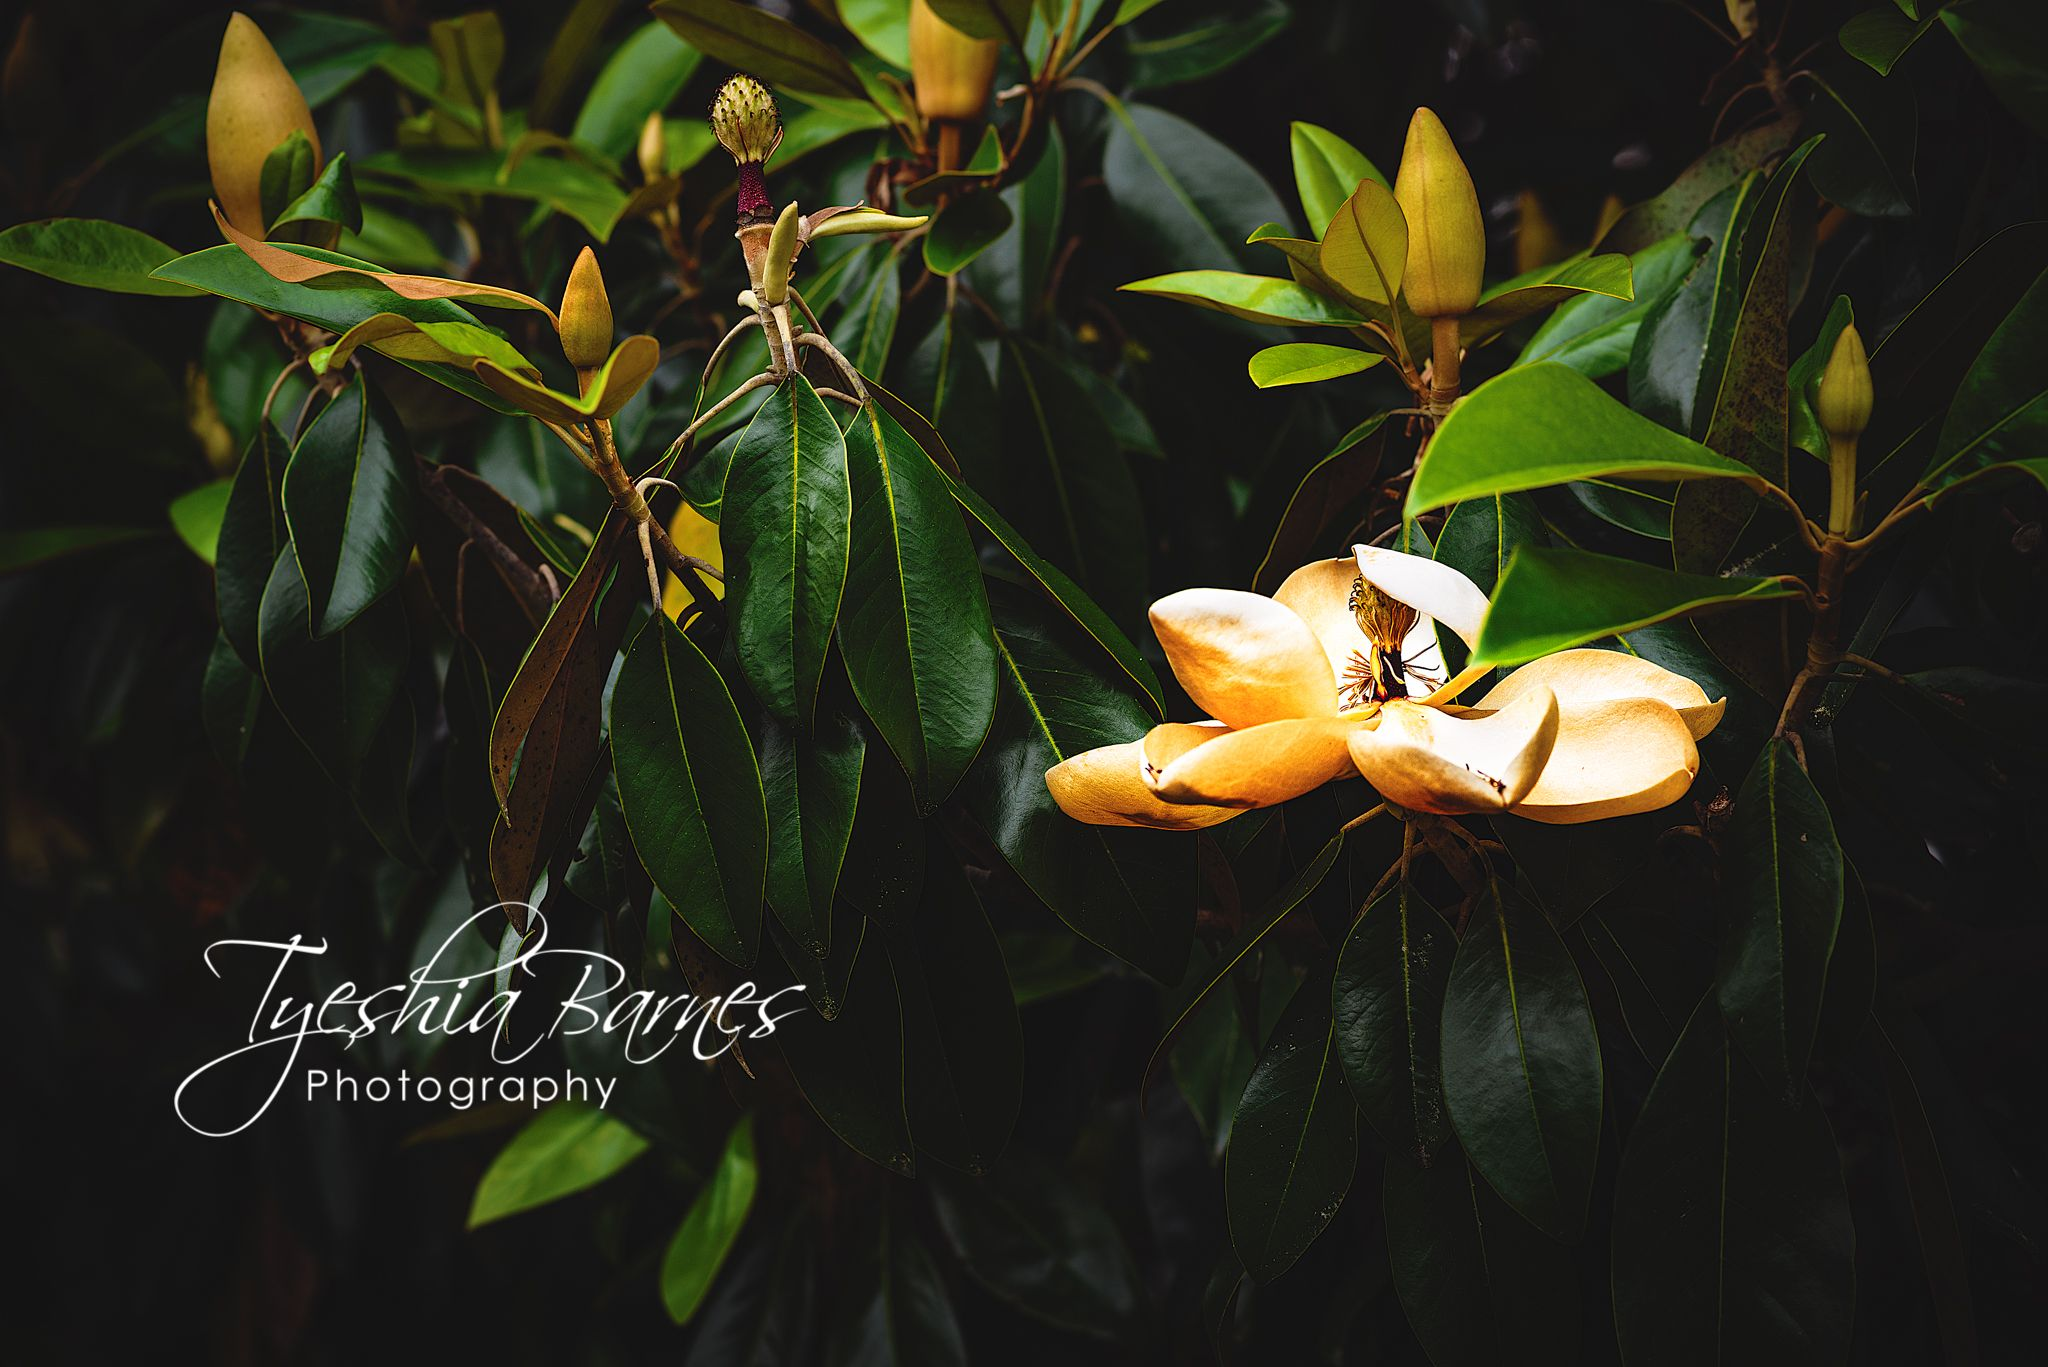 Everything has its place in life #naturephotography #blacklivesmatter #travel #travelphotographer #nature #landscape #commercialphotography #commercial #photographylover #photographylovers #photographylife #fineart #park #tree #magnolia